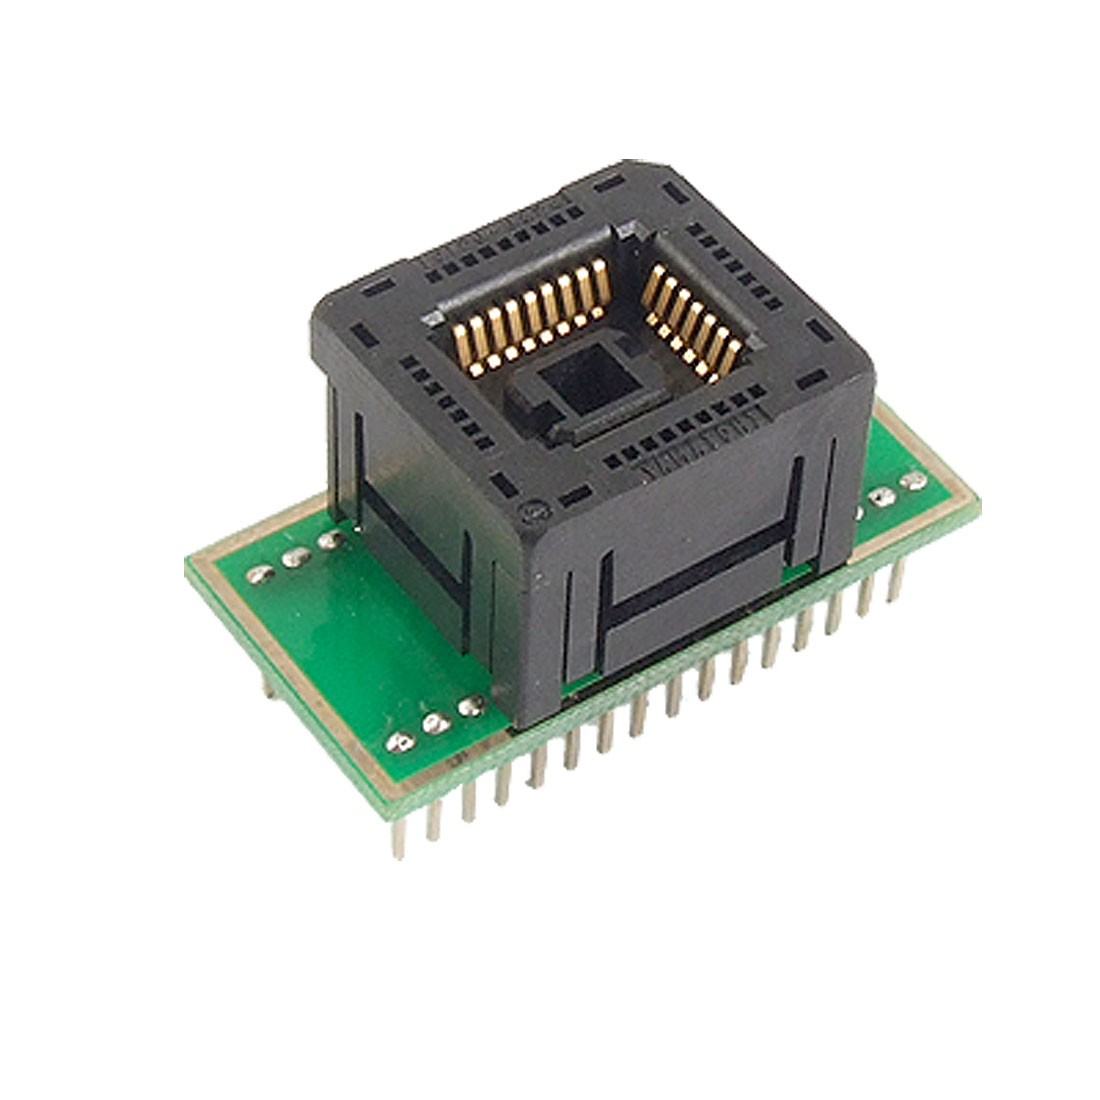 PLCC 32 Socket to DIP 32 Terminal Adapter for Chip Programming